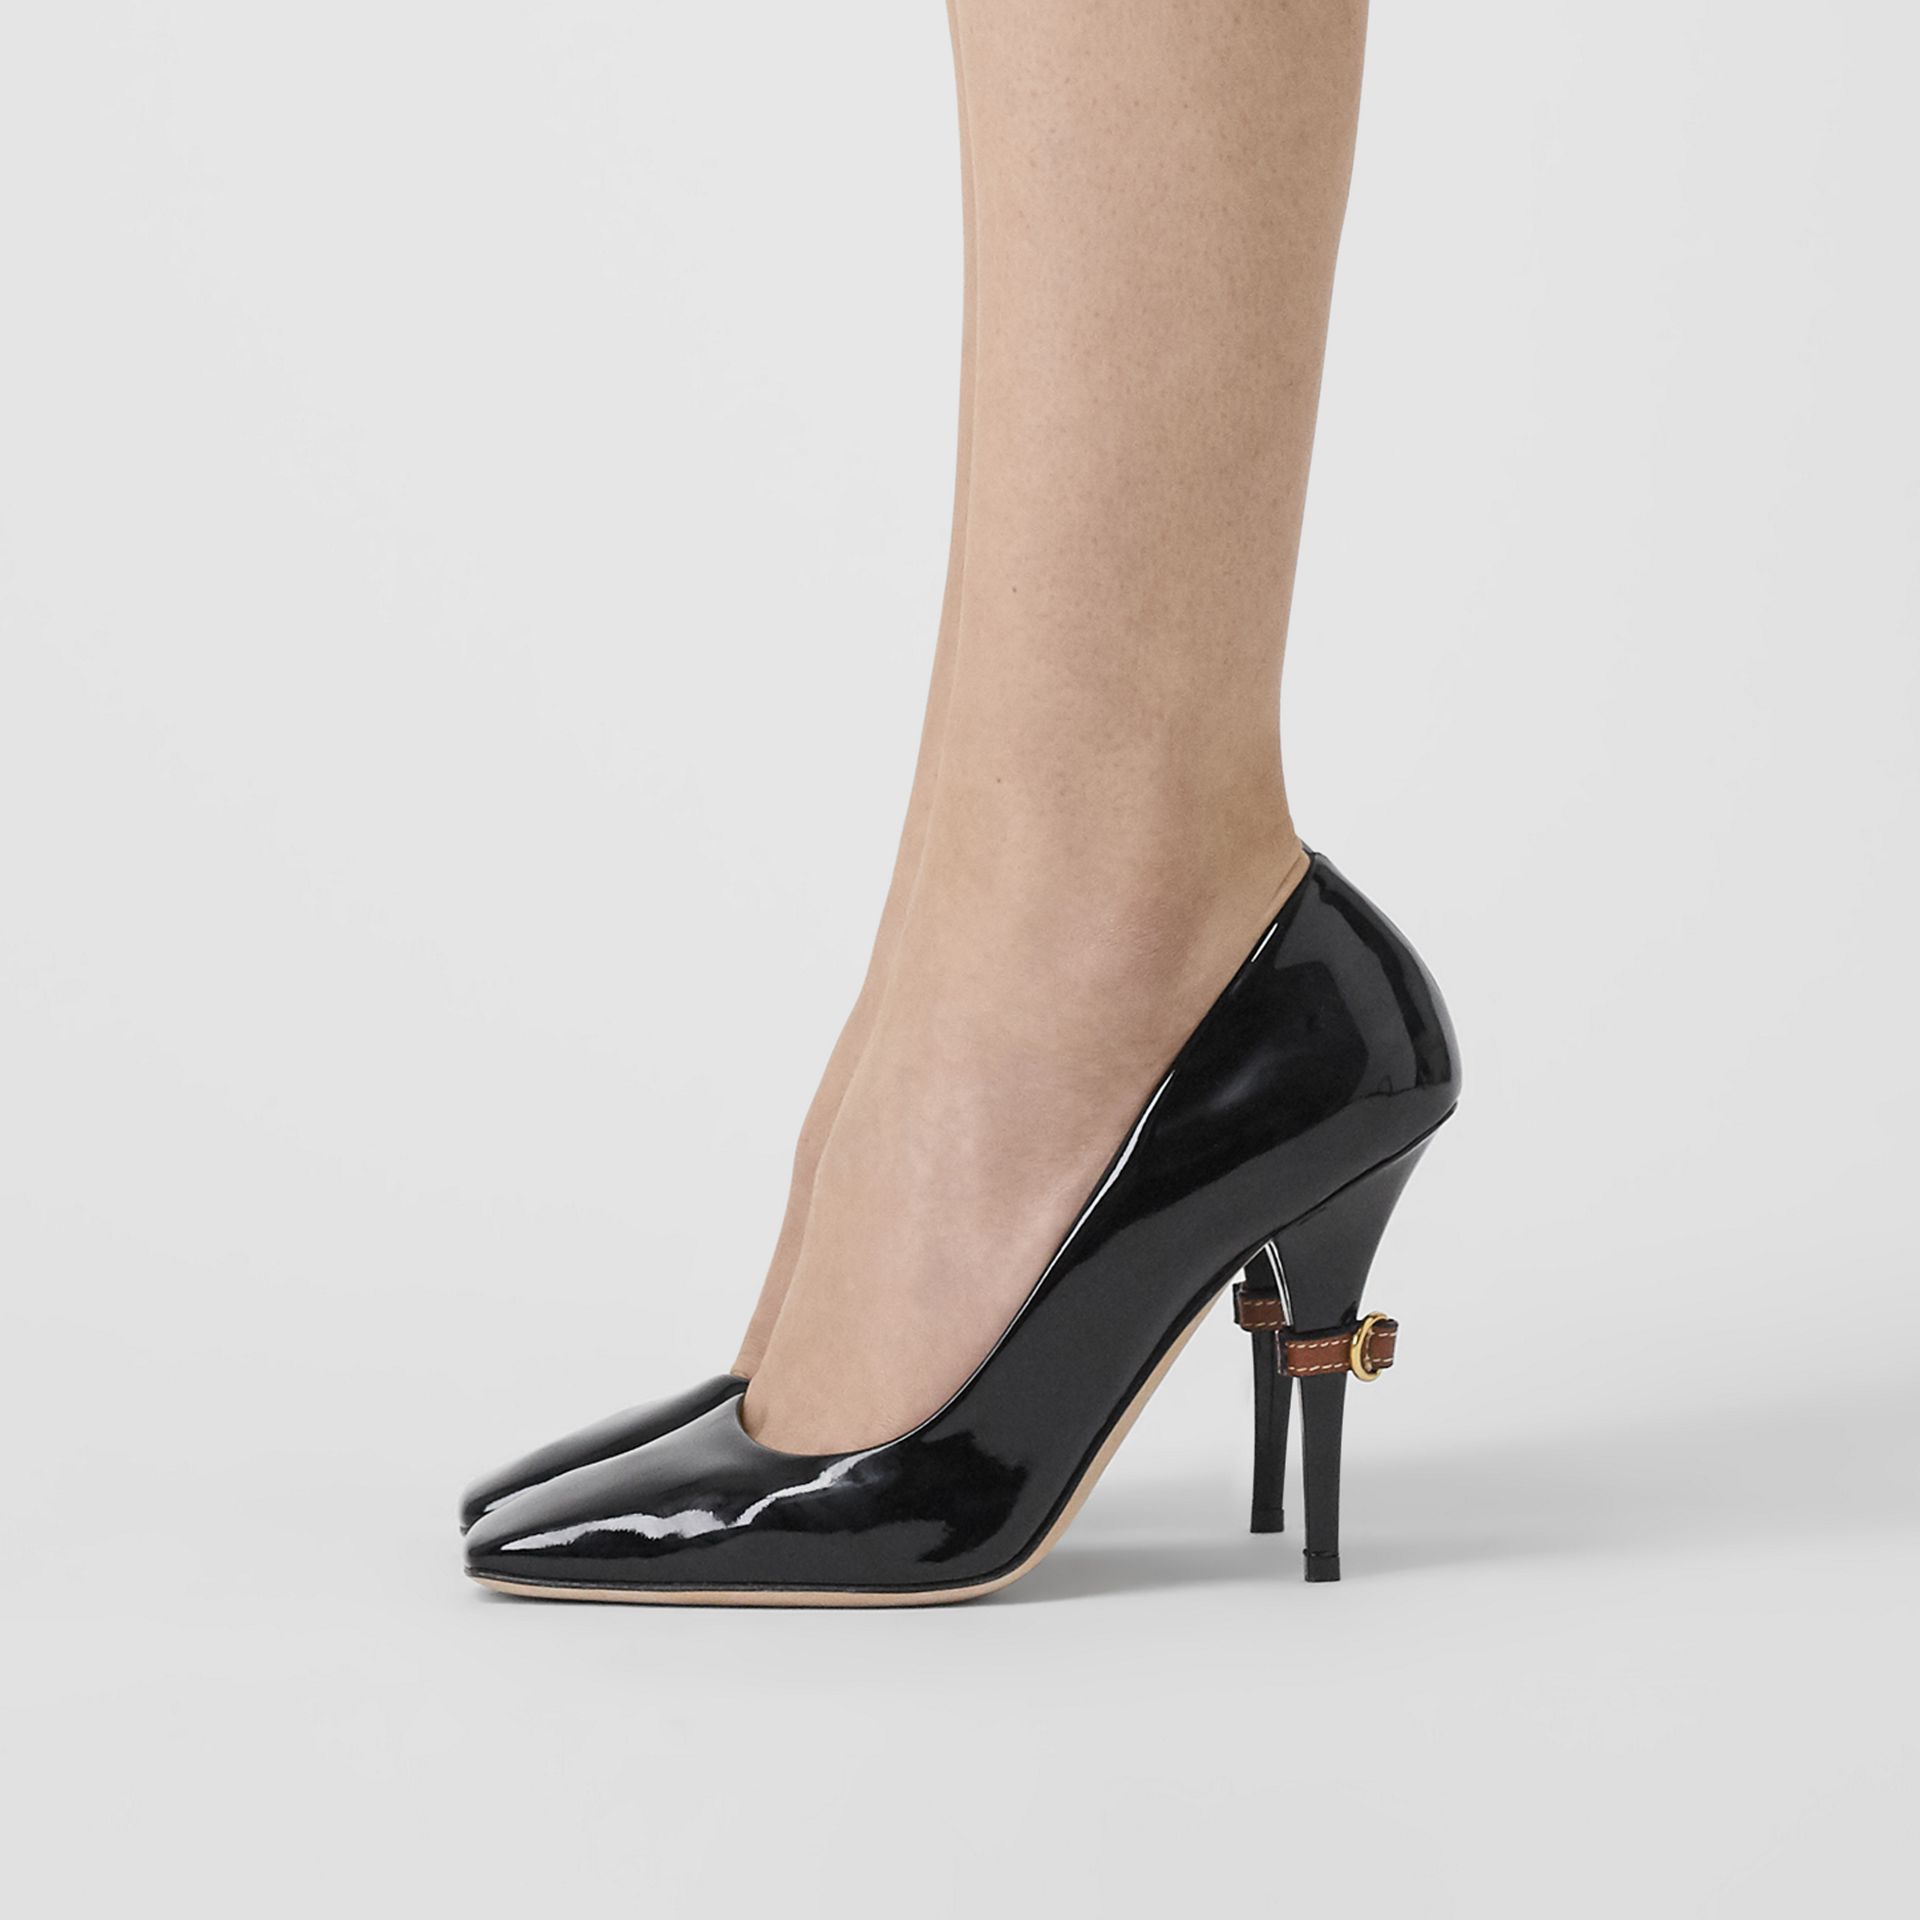 D-ring Detail Patent Leather Square-toe Pumps in Black - Women | Burberry United Kingdom - gallery image 2